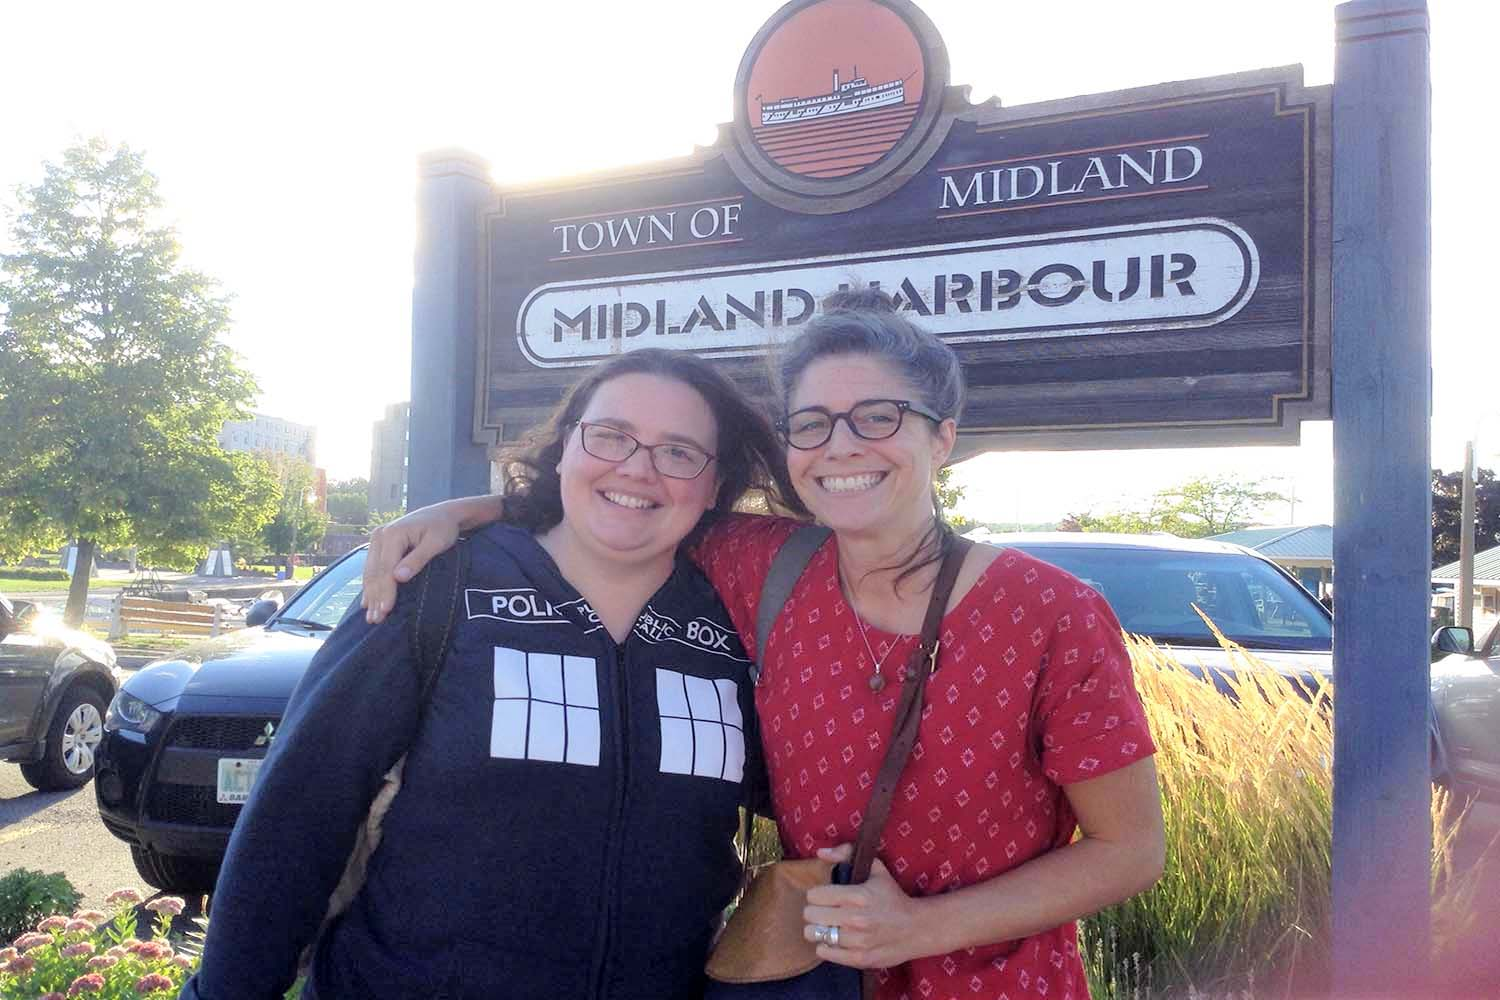 The Tale of a Town Midland Storygathering